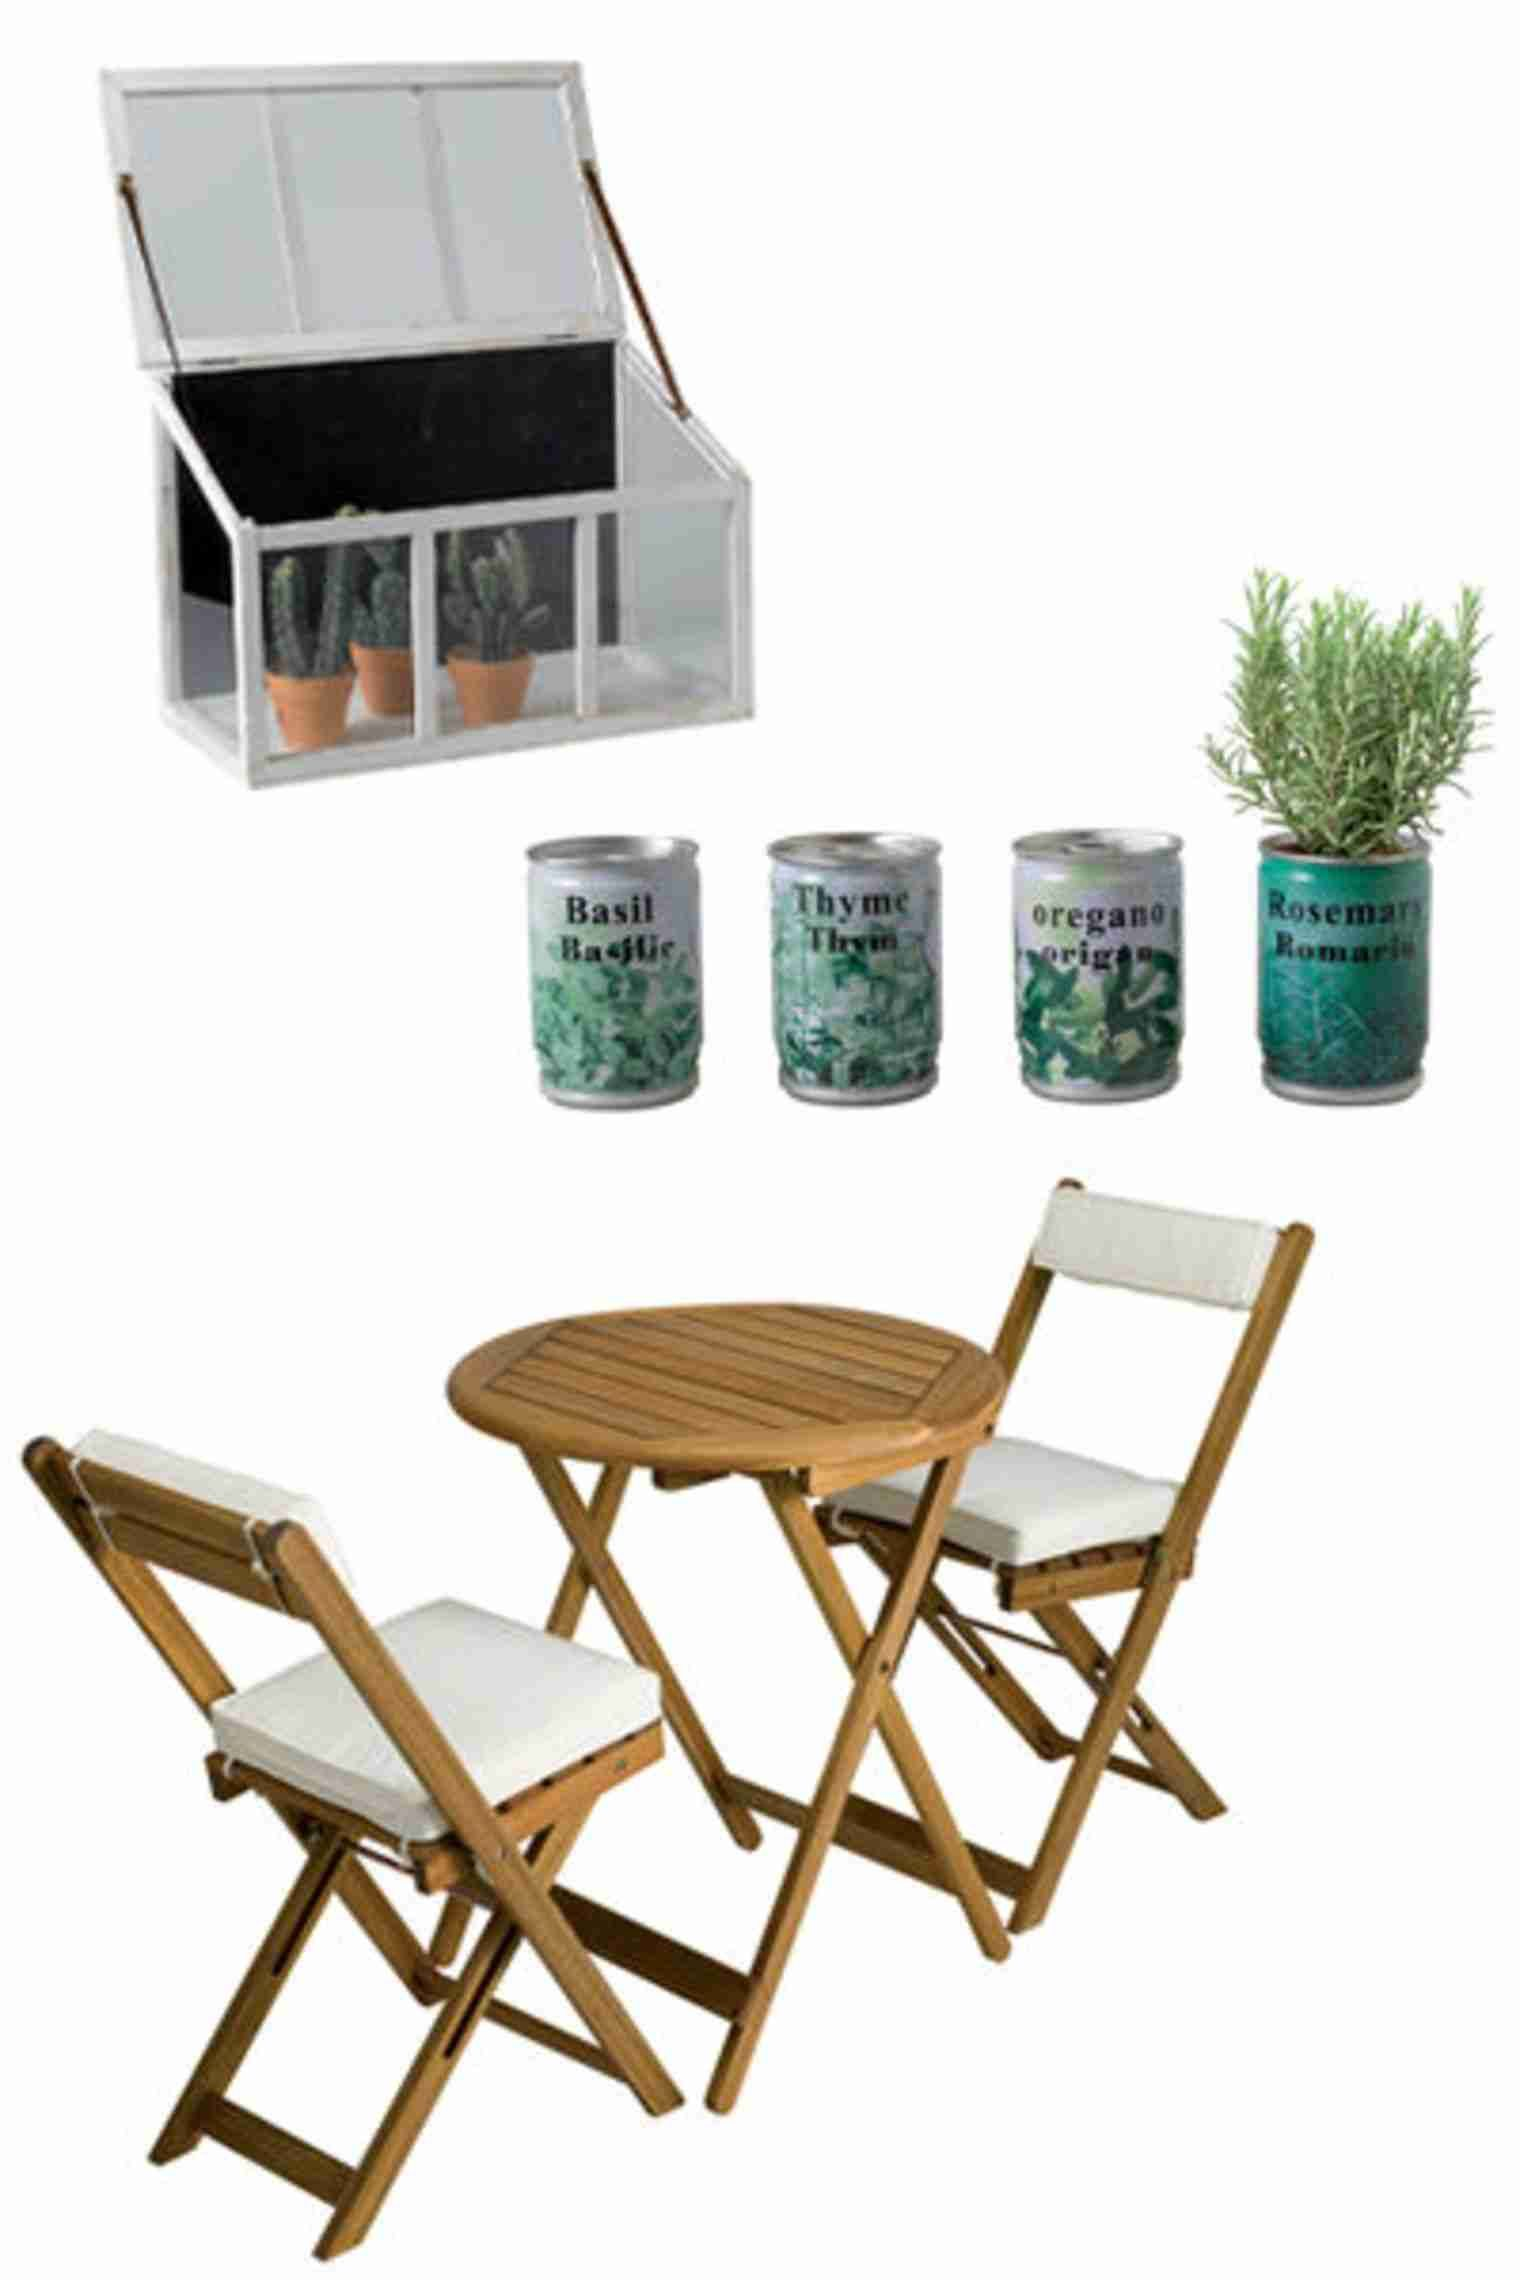 Conforama Salon Jardin 46 Agréable Salon Jardin Conforama Table Design Pinterest